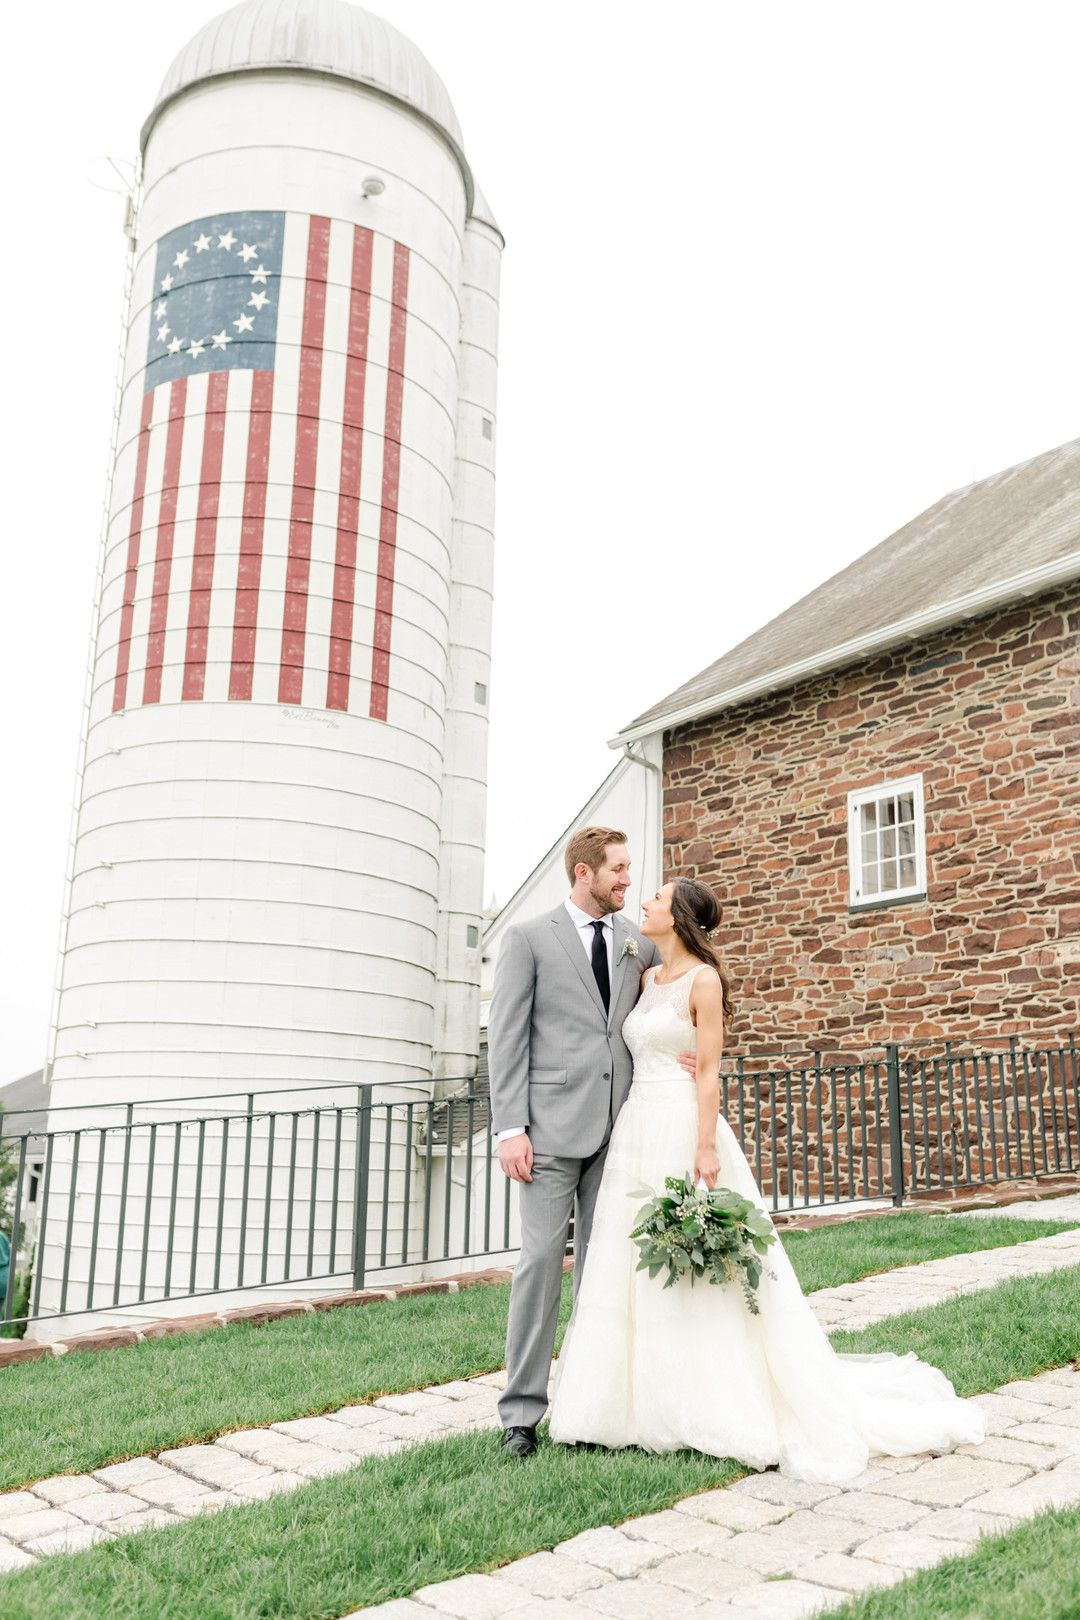 Looking for a rustic wedding venue in Bucks County, PA ...